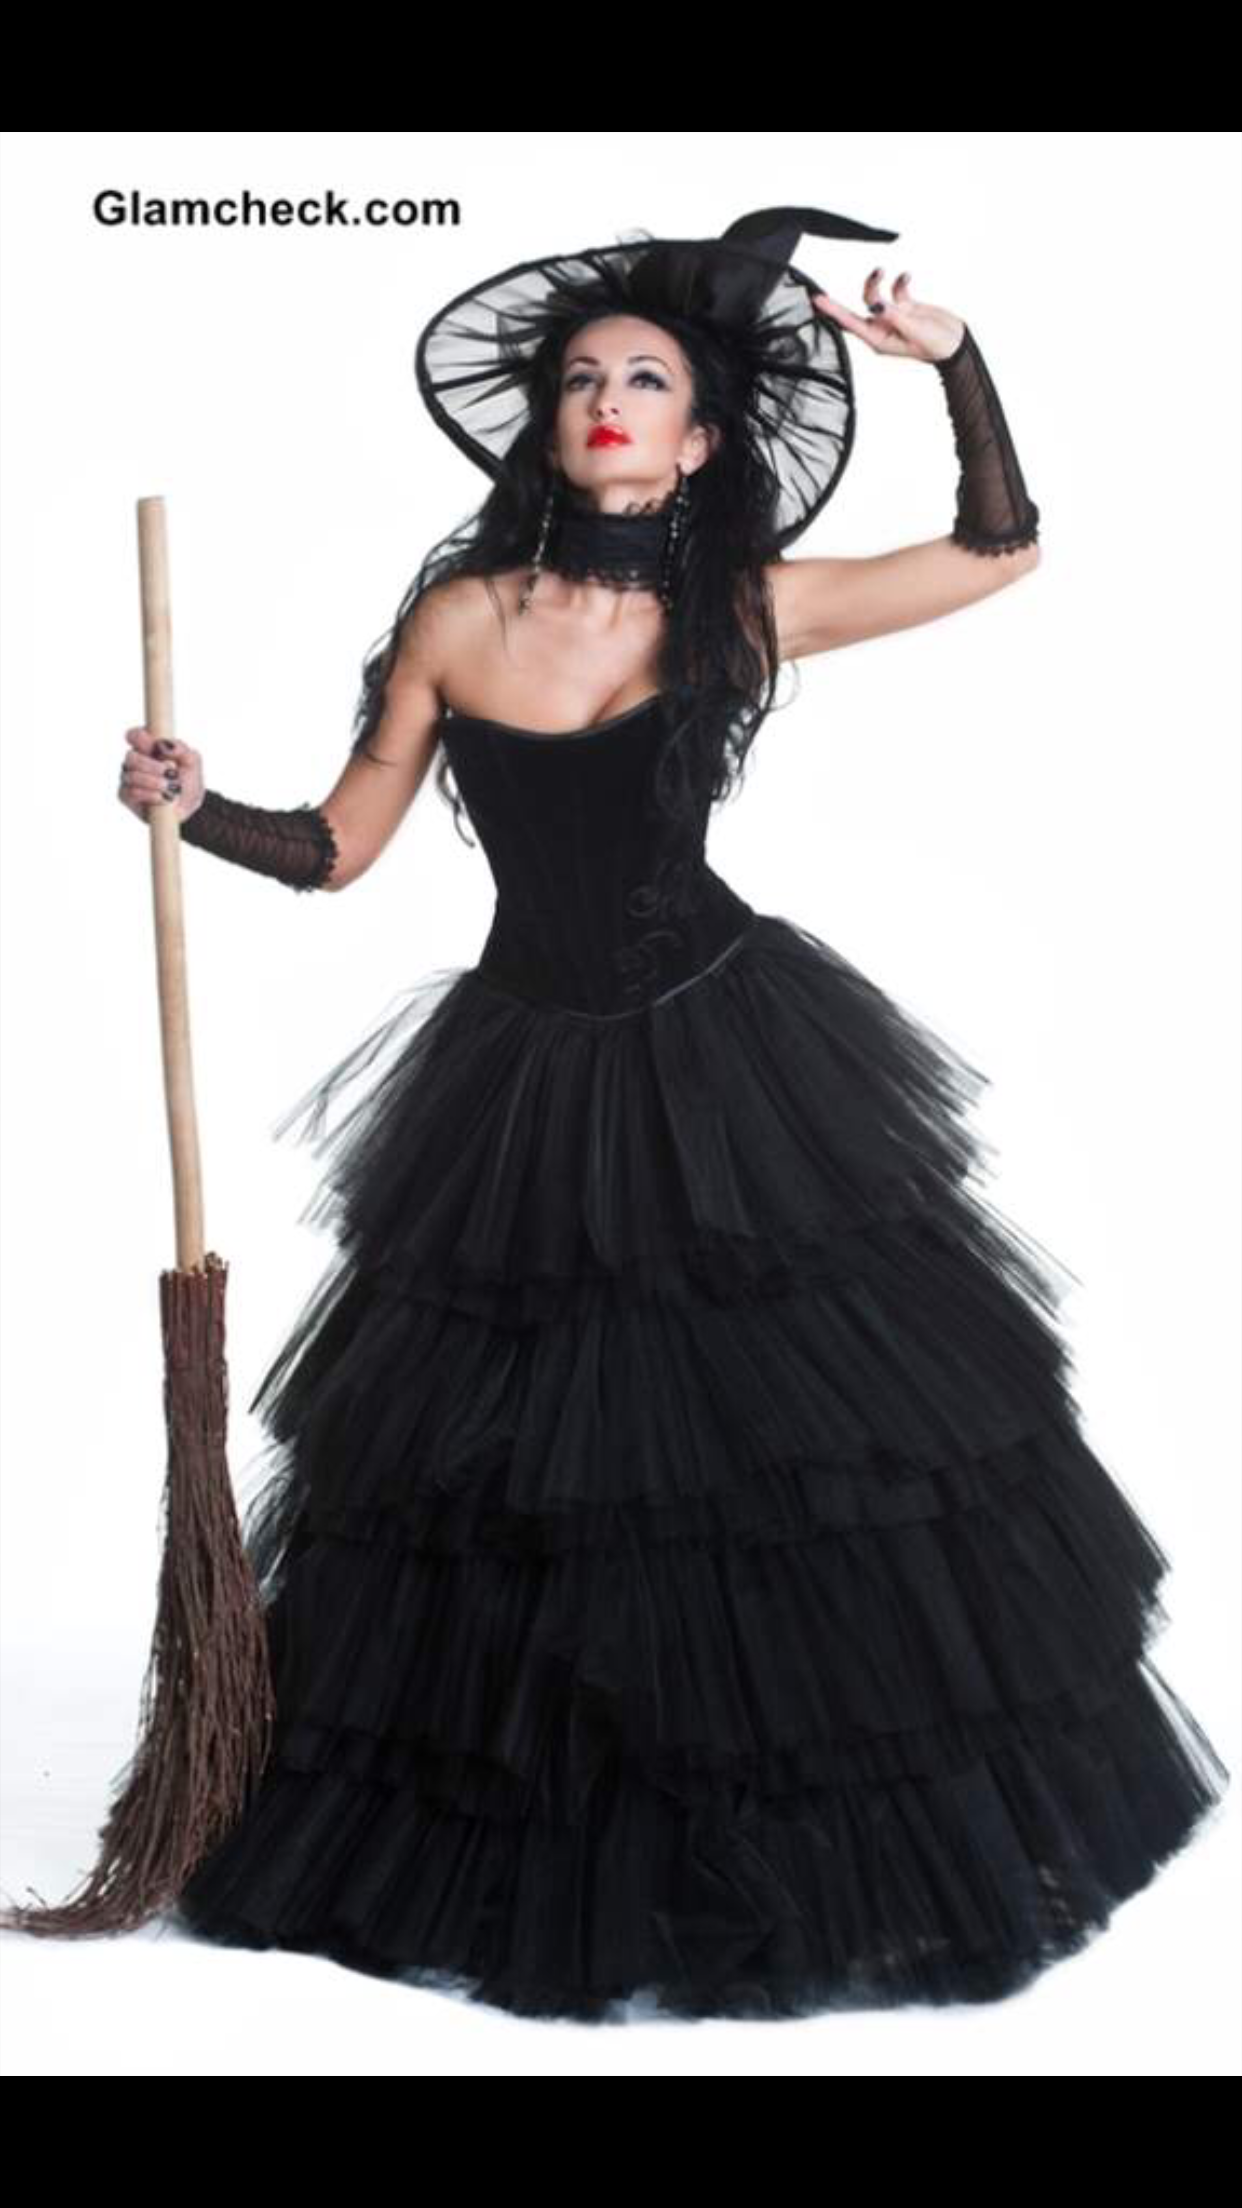 A very popular Halloween costume is that of a witch. Letu0027s take a look at some halloween witch costume ideas for women and kids.  sc 1 st  Pinterest & Pin by Rachael Blackwell on Halloween | Pinterest